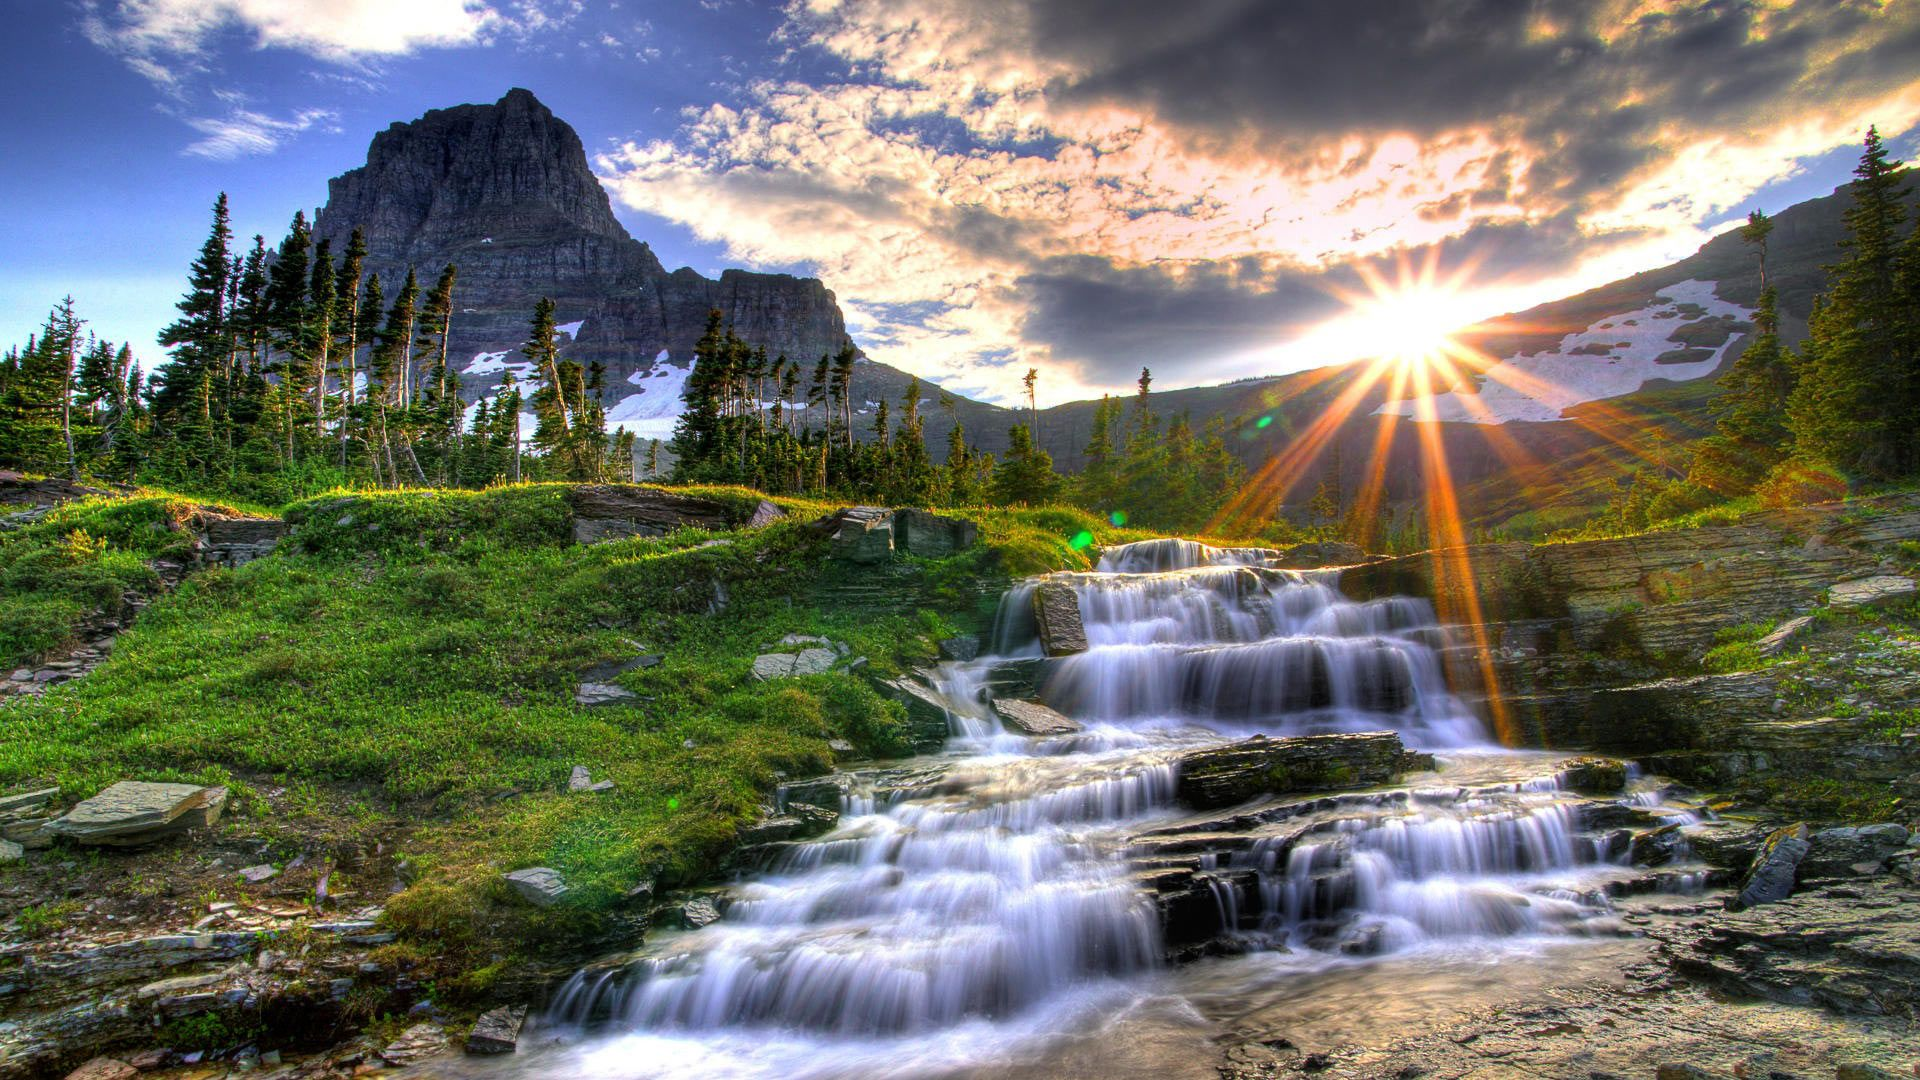 Cool Nature Background Images 1920x1080